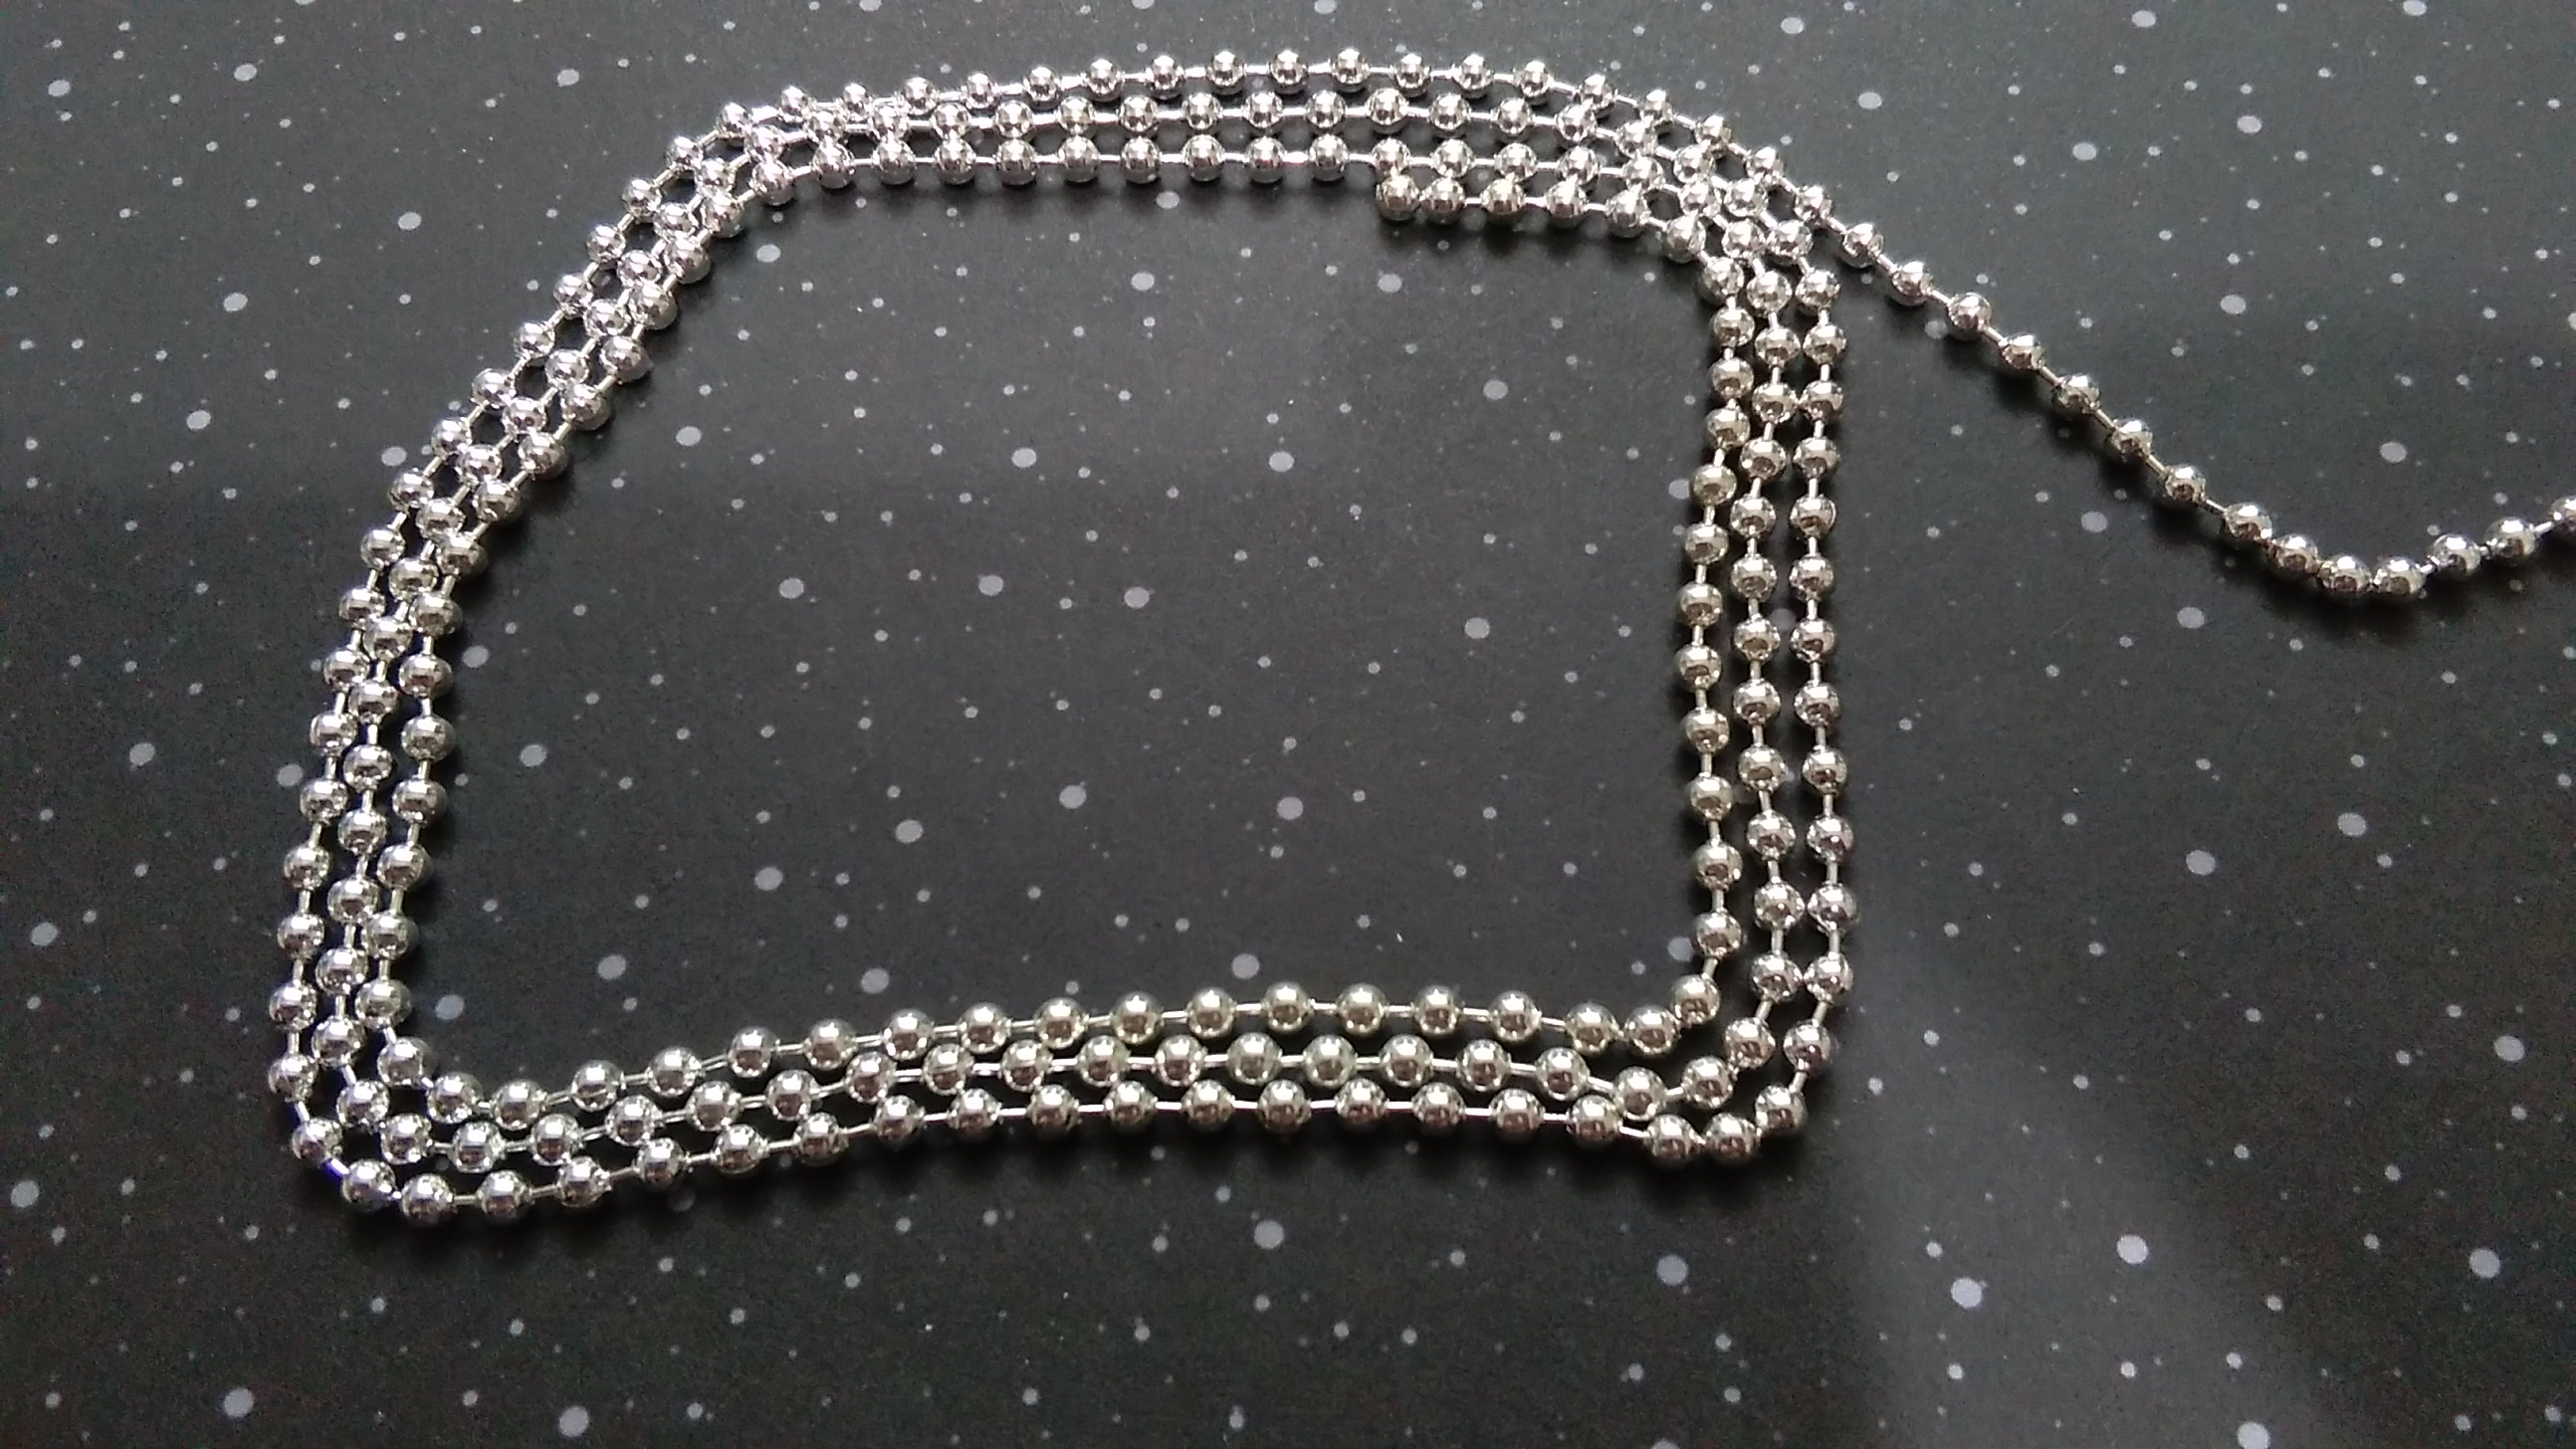 Antique Silver Ballbead Chain 2.4mm